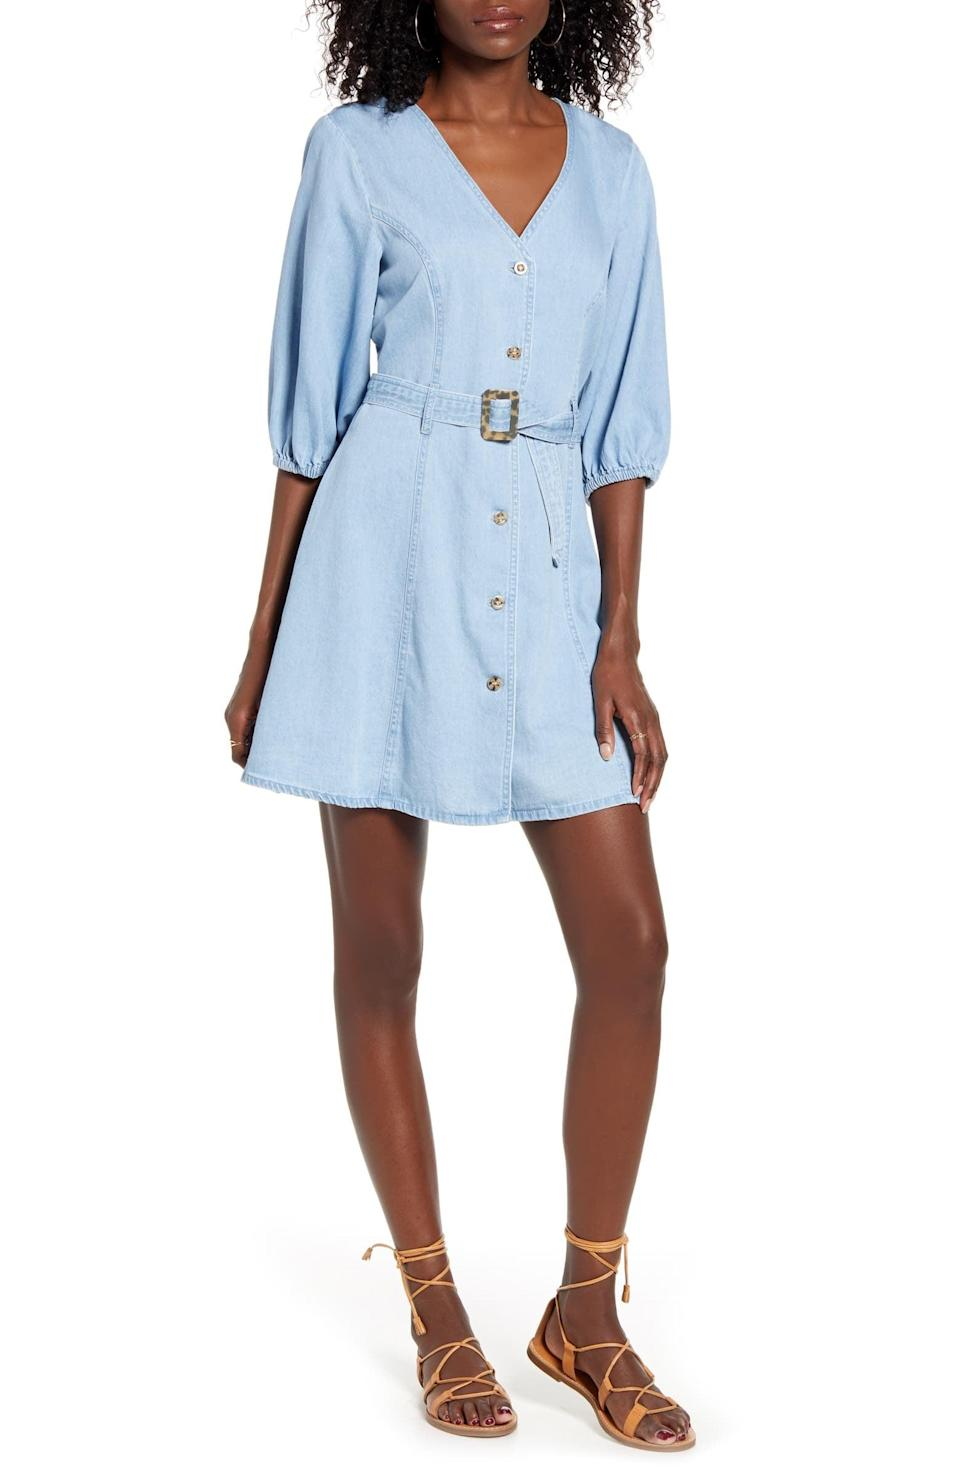 "<p>Style this <a href=""https://www.popsugar.com/buy/VERO-MODA-Clarisa-Belted-Chambray-Dress-582013?p_name=VERO%20MODA%20Clarisa%20Belted%20Chambray%20Dress&retailer=shop.nordstrom.com&pid=582013&price=69&evar1=fab%3Aus&evar9=35329485&evar98=https%3A%2F%2Fwww.popsugar.com%2Ffashion%2Fphoto-gallery%2F35329485%2Fimage%2F47550219%2FVERO-MODA-Clarisa-Belted-Chambray-Dress&list1=shopping%2Cdenim%2Csummer%20fashion%2Cfashion%20shopping&prop13=mobile&pdata=1"" class=""link rapid-noclick-resp"" rel=""nofollow noopener"" target=""_blank"" data-ylk=""slk:VERO MODA Clarisa Belted Chambray Dress"">VERO MODA Clarisa Belted Chambray Dress</a> ($69) with sandals.</p>"